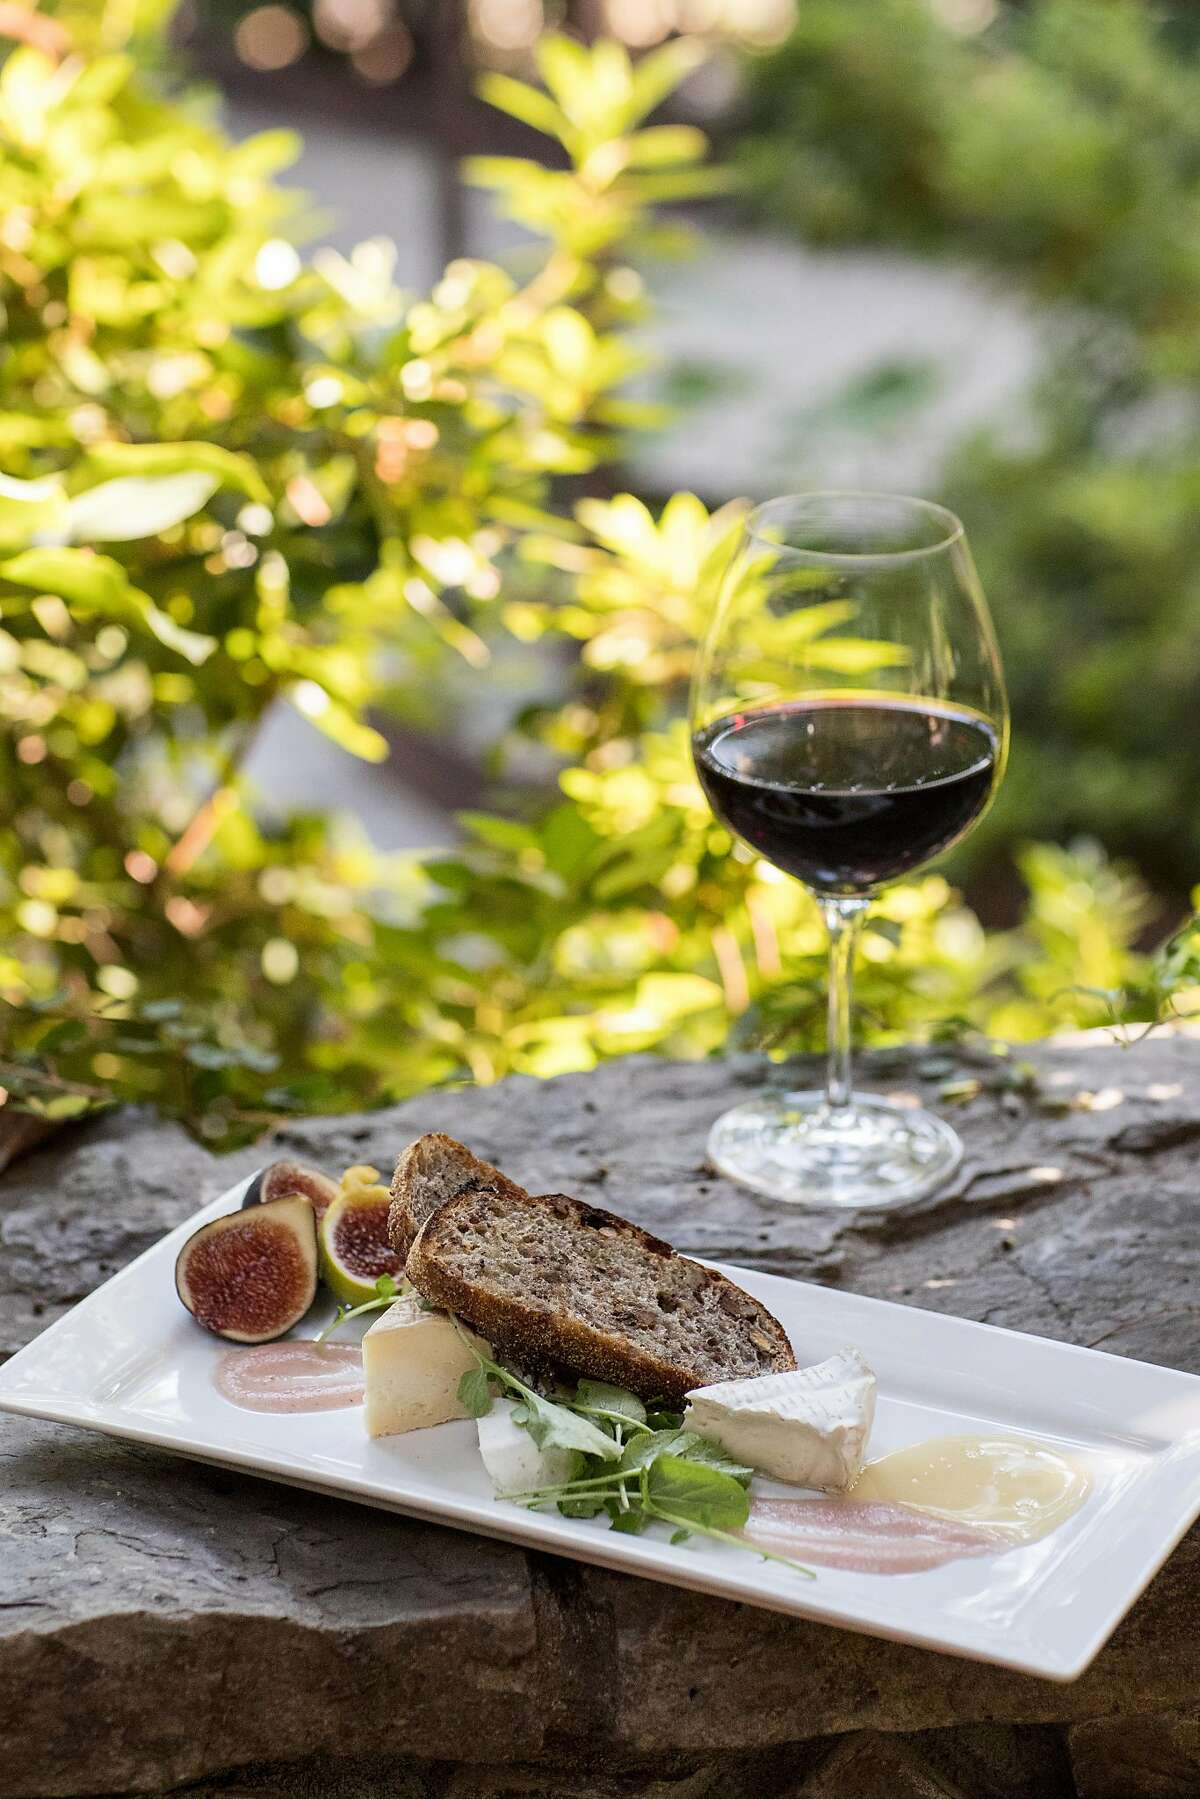 The artisan cheese plate with locally sourced figs and honey is seen at Towne House Restaurant at Wine & Roses in Lodi, Calif., on Saturday, August 19, 2017. The restaurant features innovative dishes that use quality seasonal and regionally sourced ingredients.